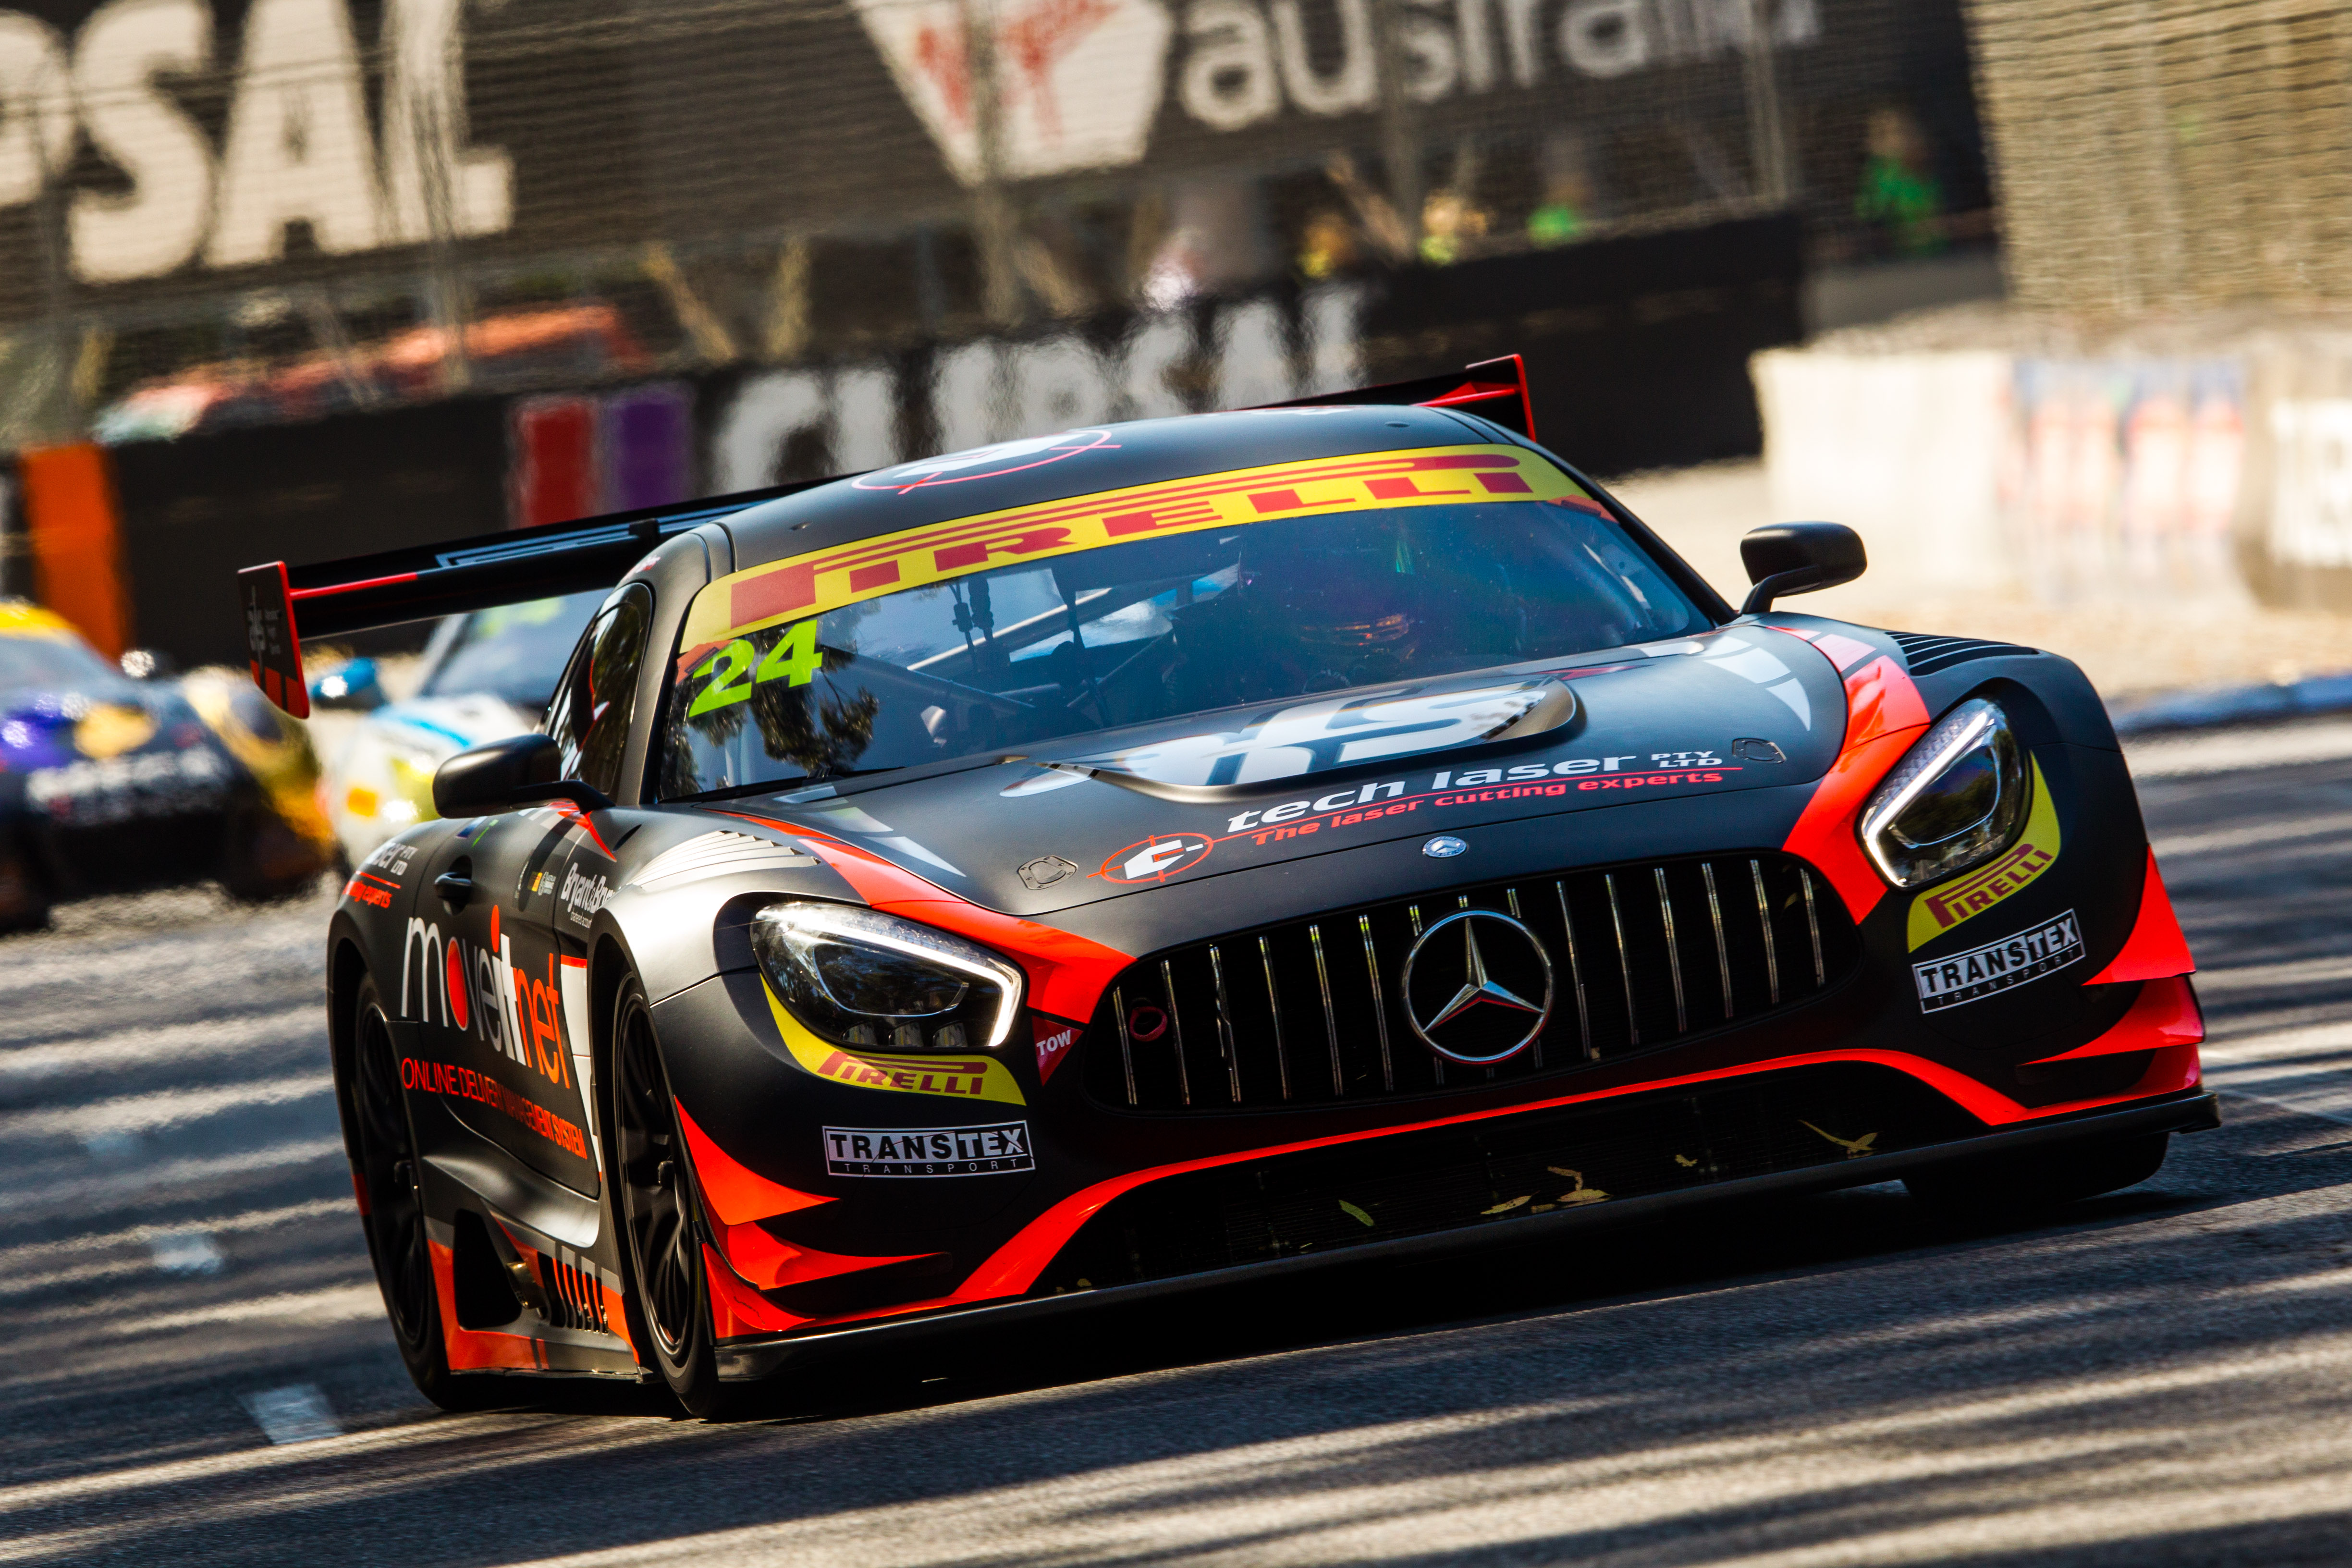 mercedes amg gt3 scores first overall win of 2017 endurance info english spoken. Black Bedroom Furniture Sets. Home Design Ideas